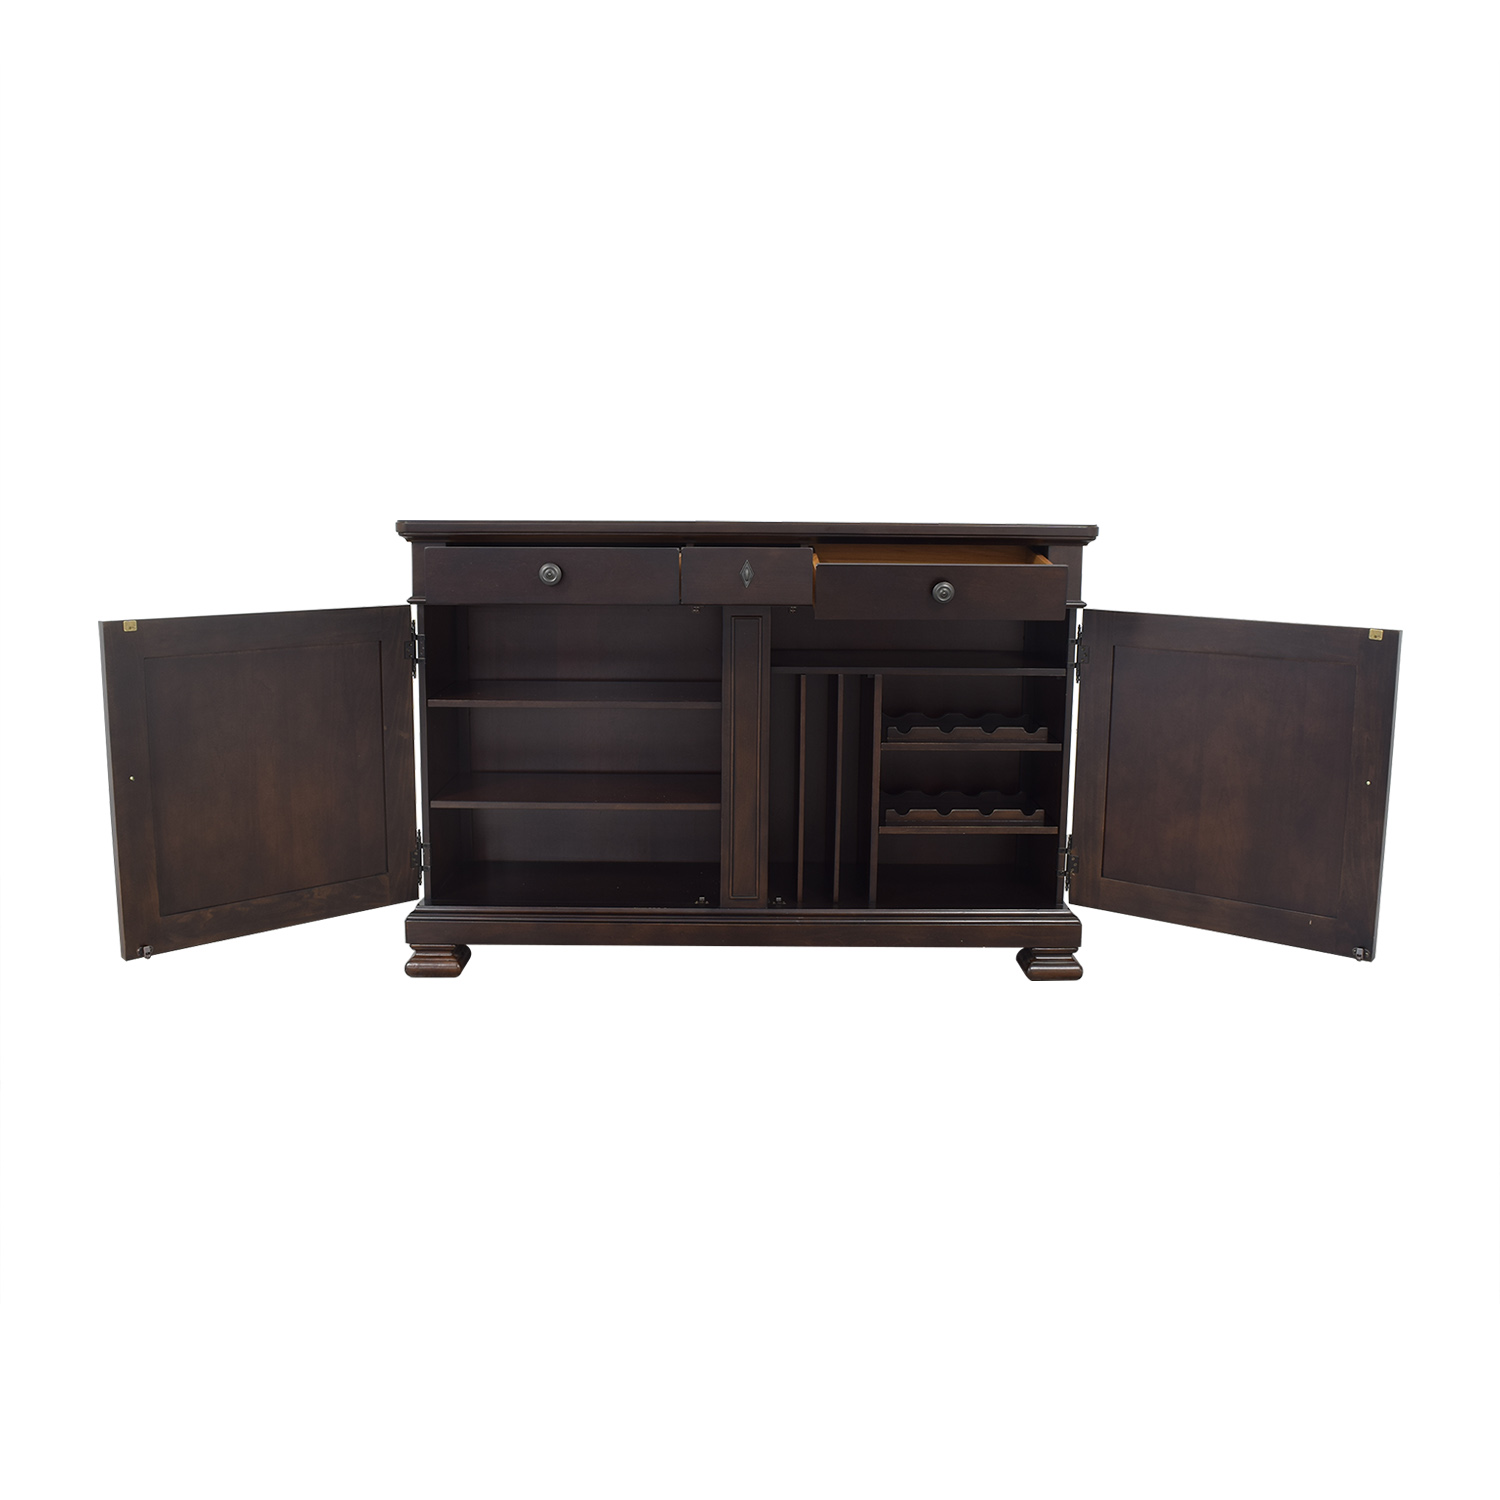 Macy's Universal Furniture Dining Credenza Universal Furniture